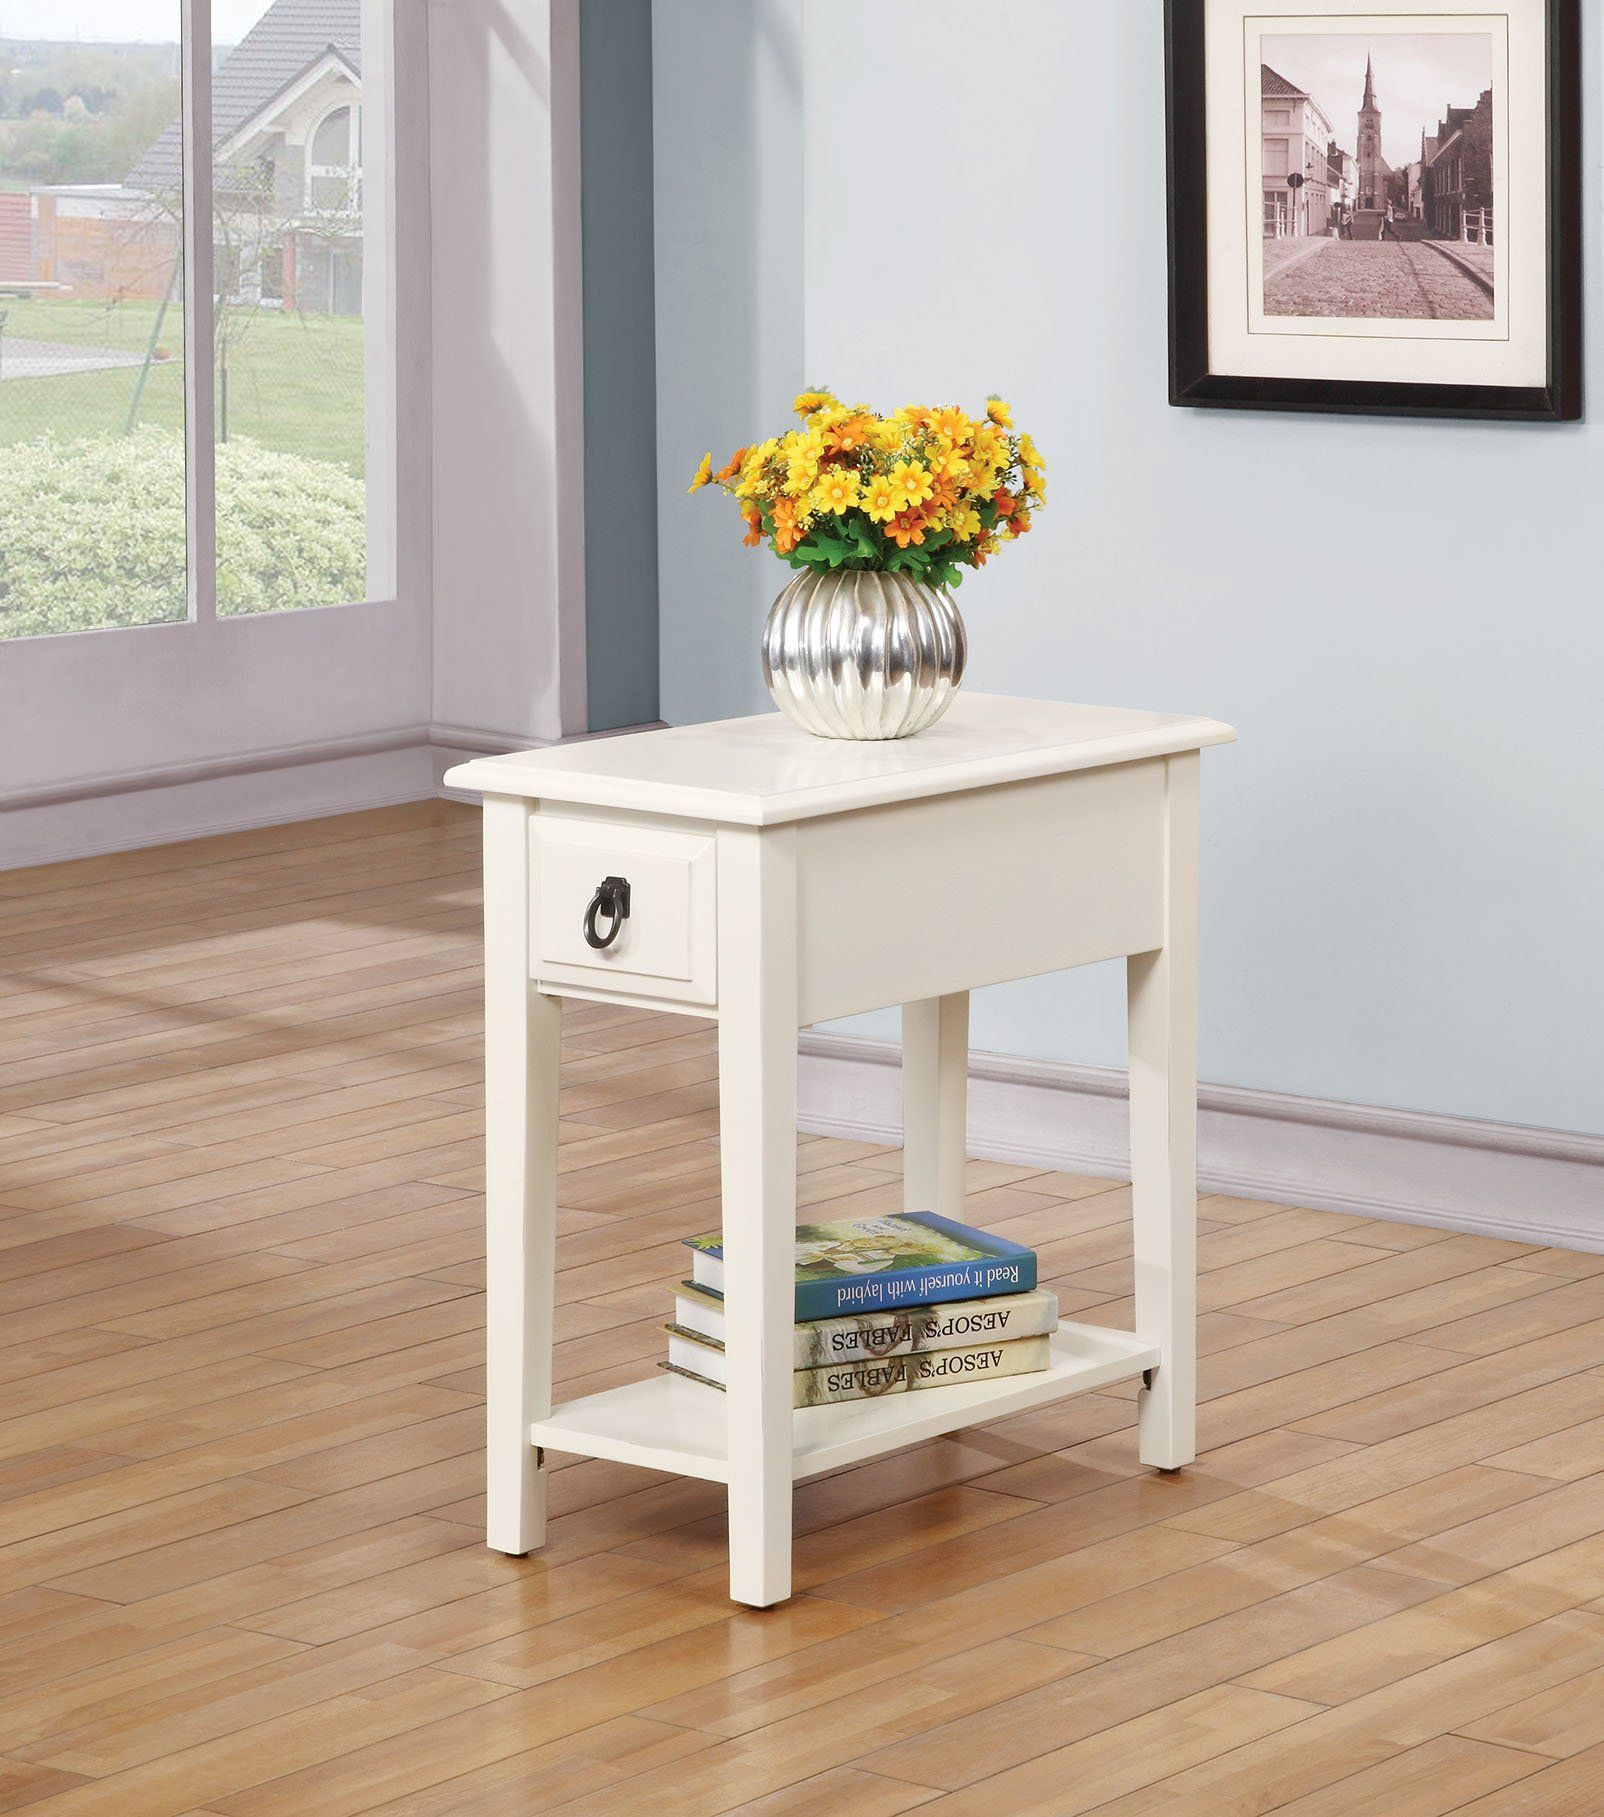 acme jeana side table white products target scalloped accent owings console shelf modern couches toronto small cherry wood grey chair mosaic patio umbrella black living essentials